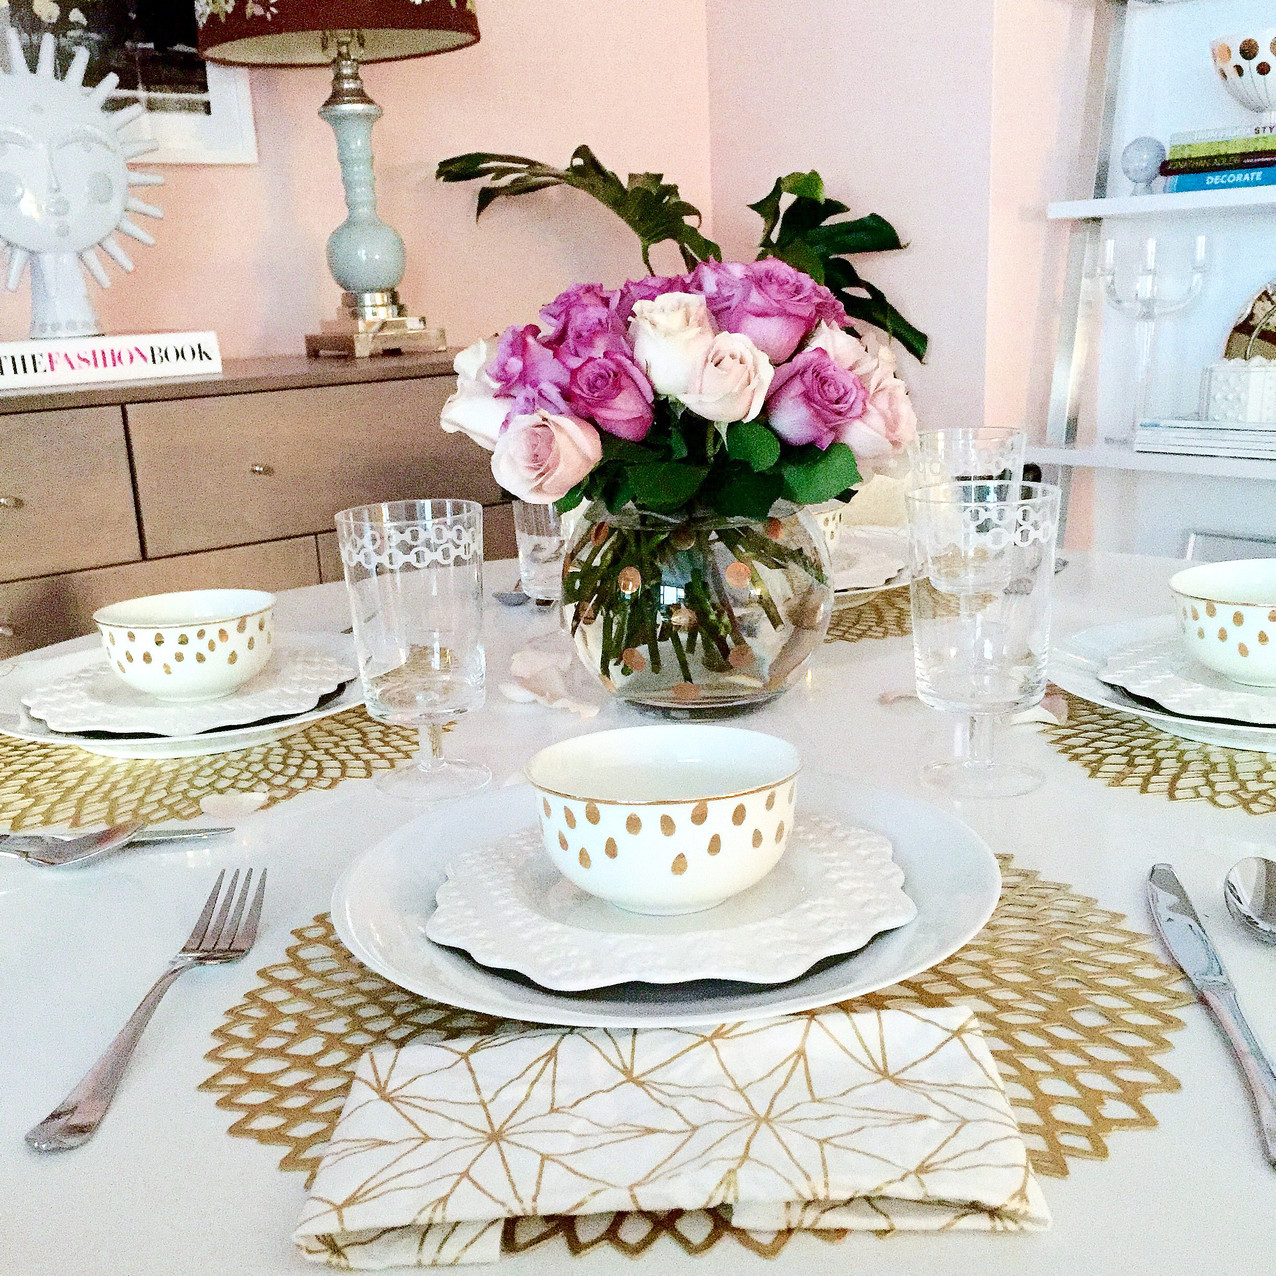 Pretty dining table setting